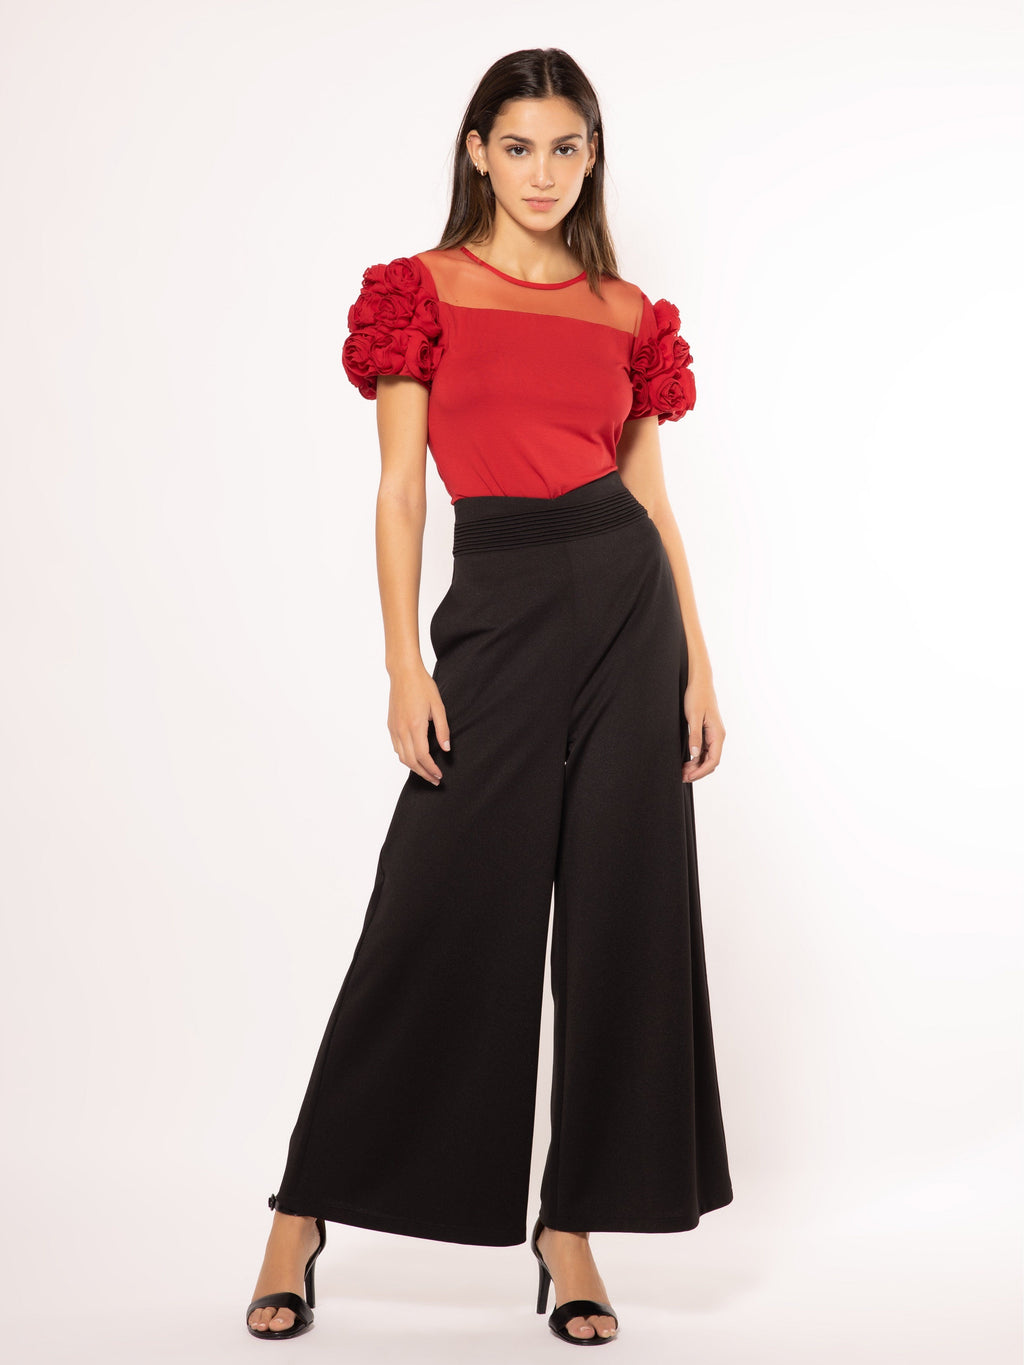 Sheer Shouldered Rose Sleeves Top TOP Gracia Fashion RED S